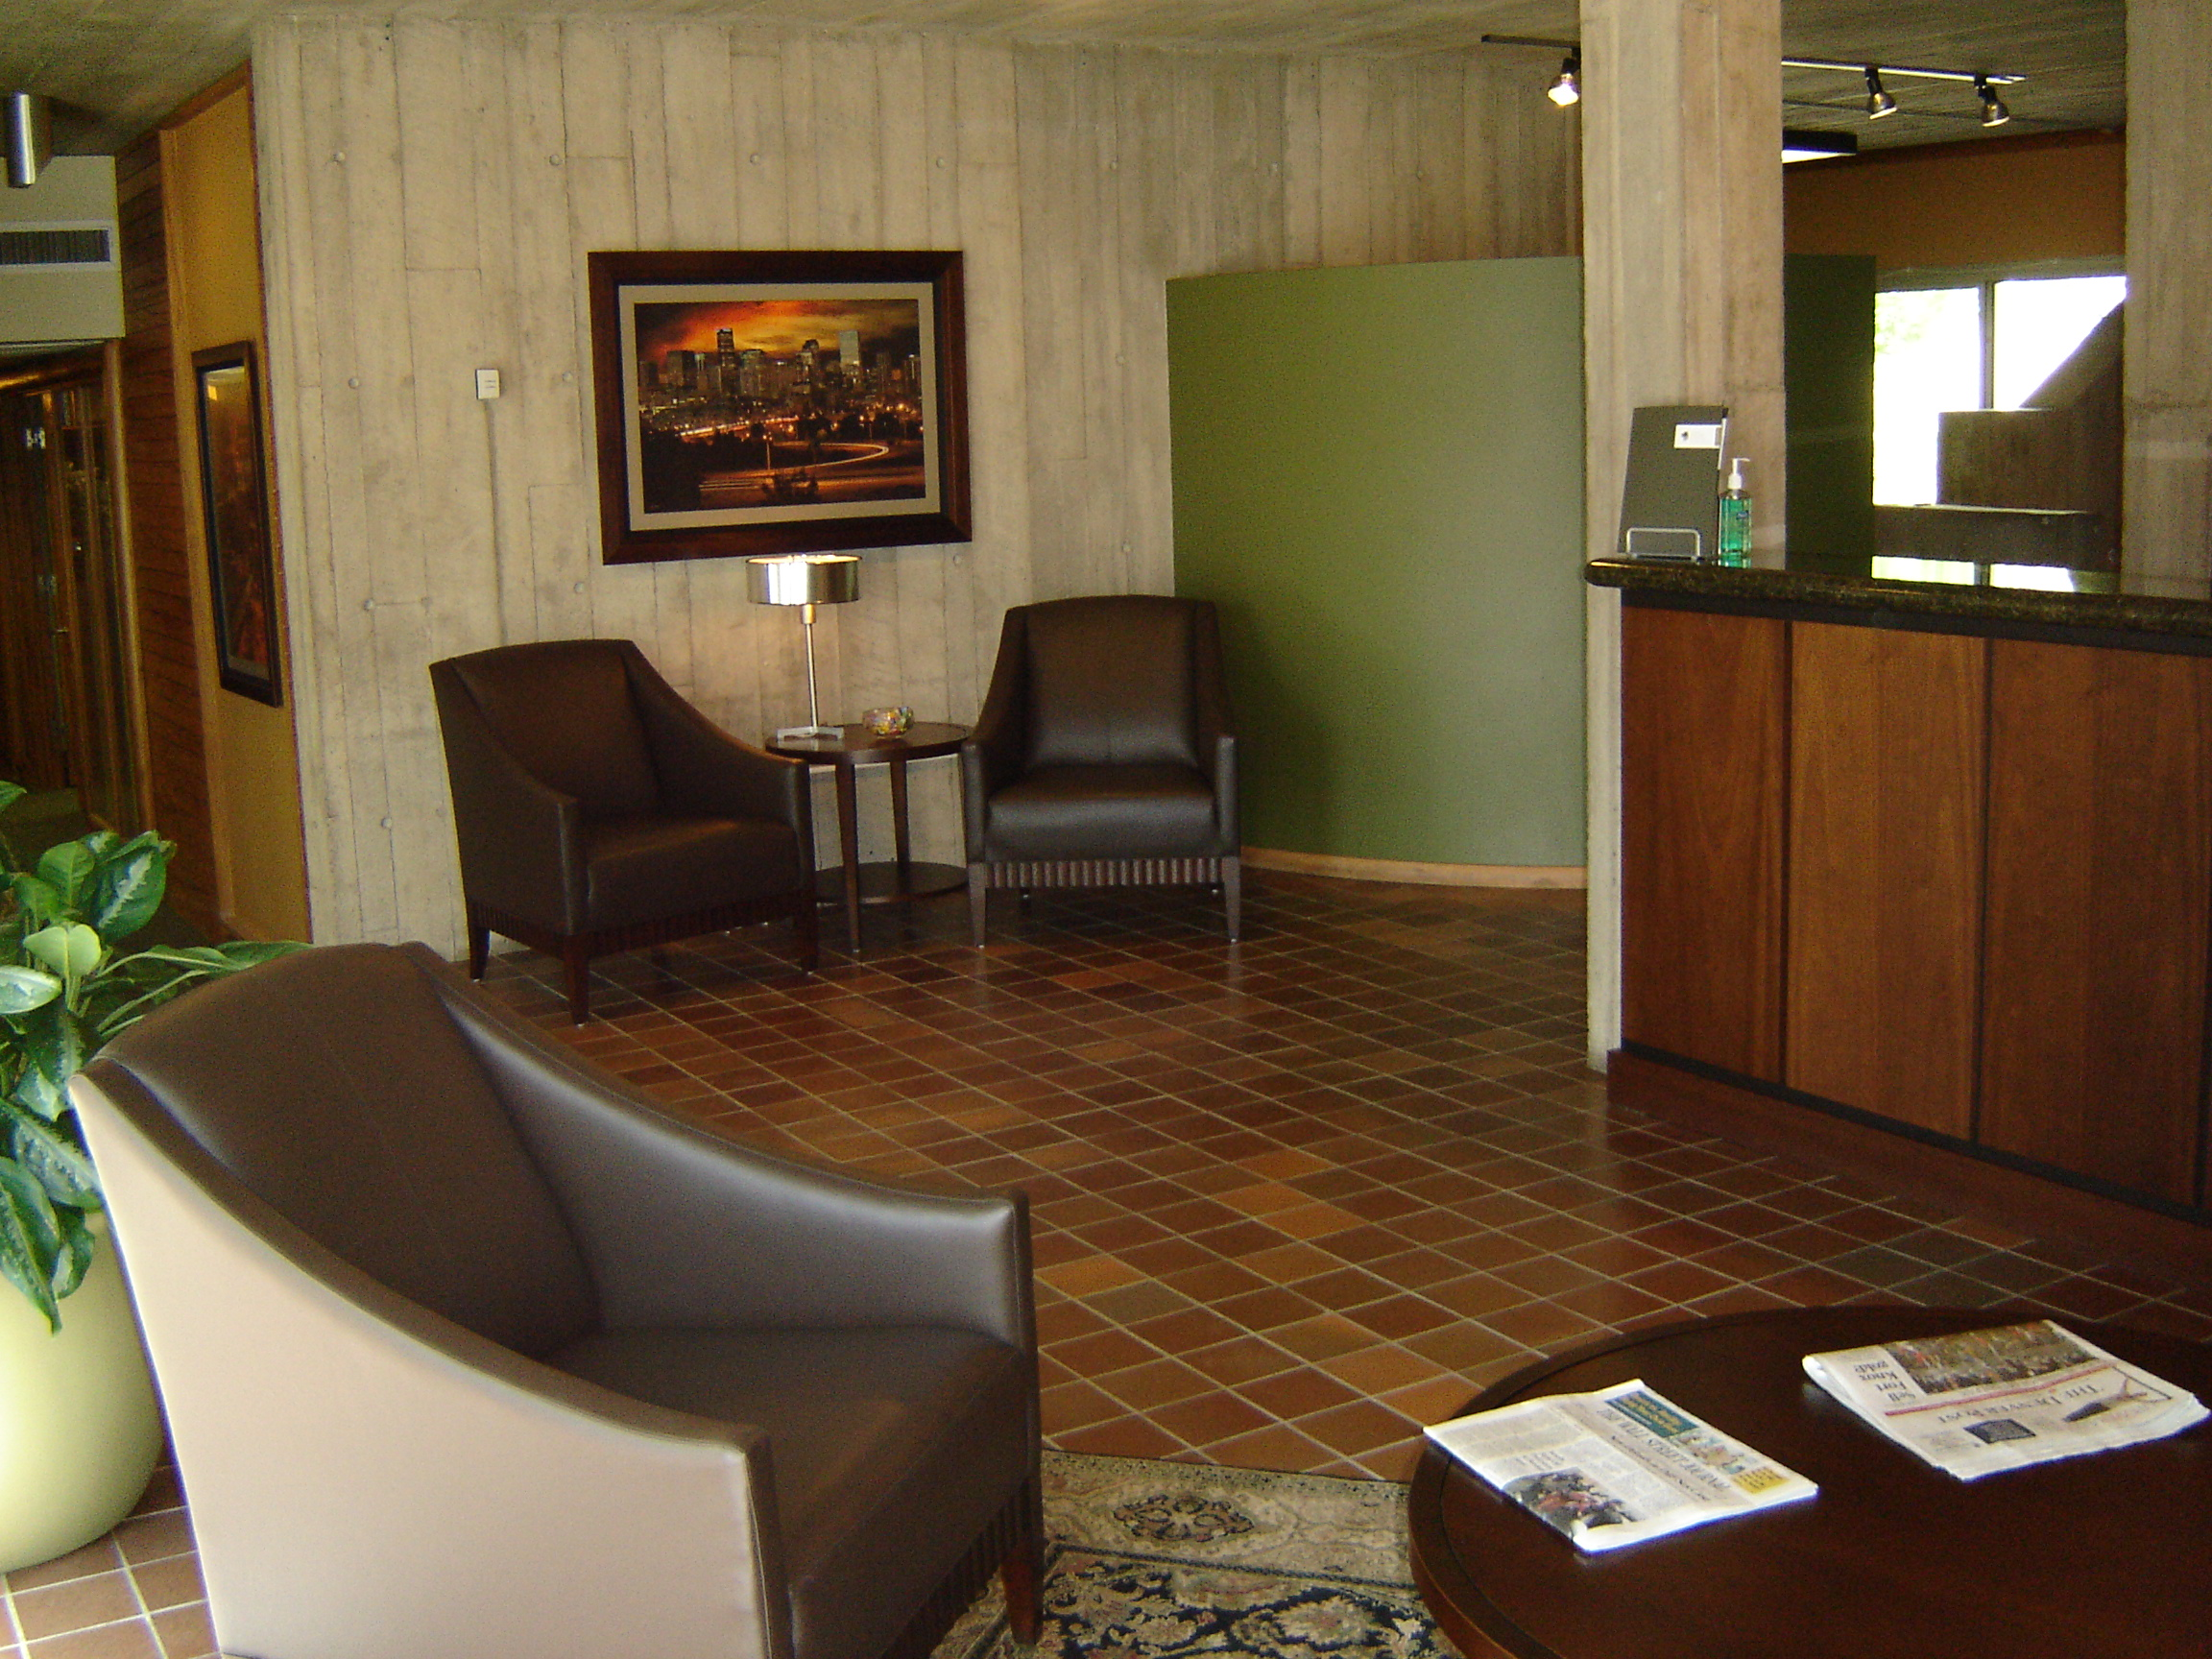 Corporate Lobby Refurbishment Attorney Offices Englewood CO